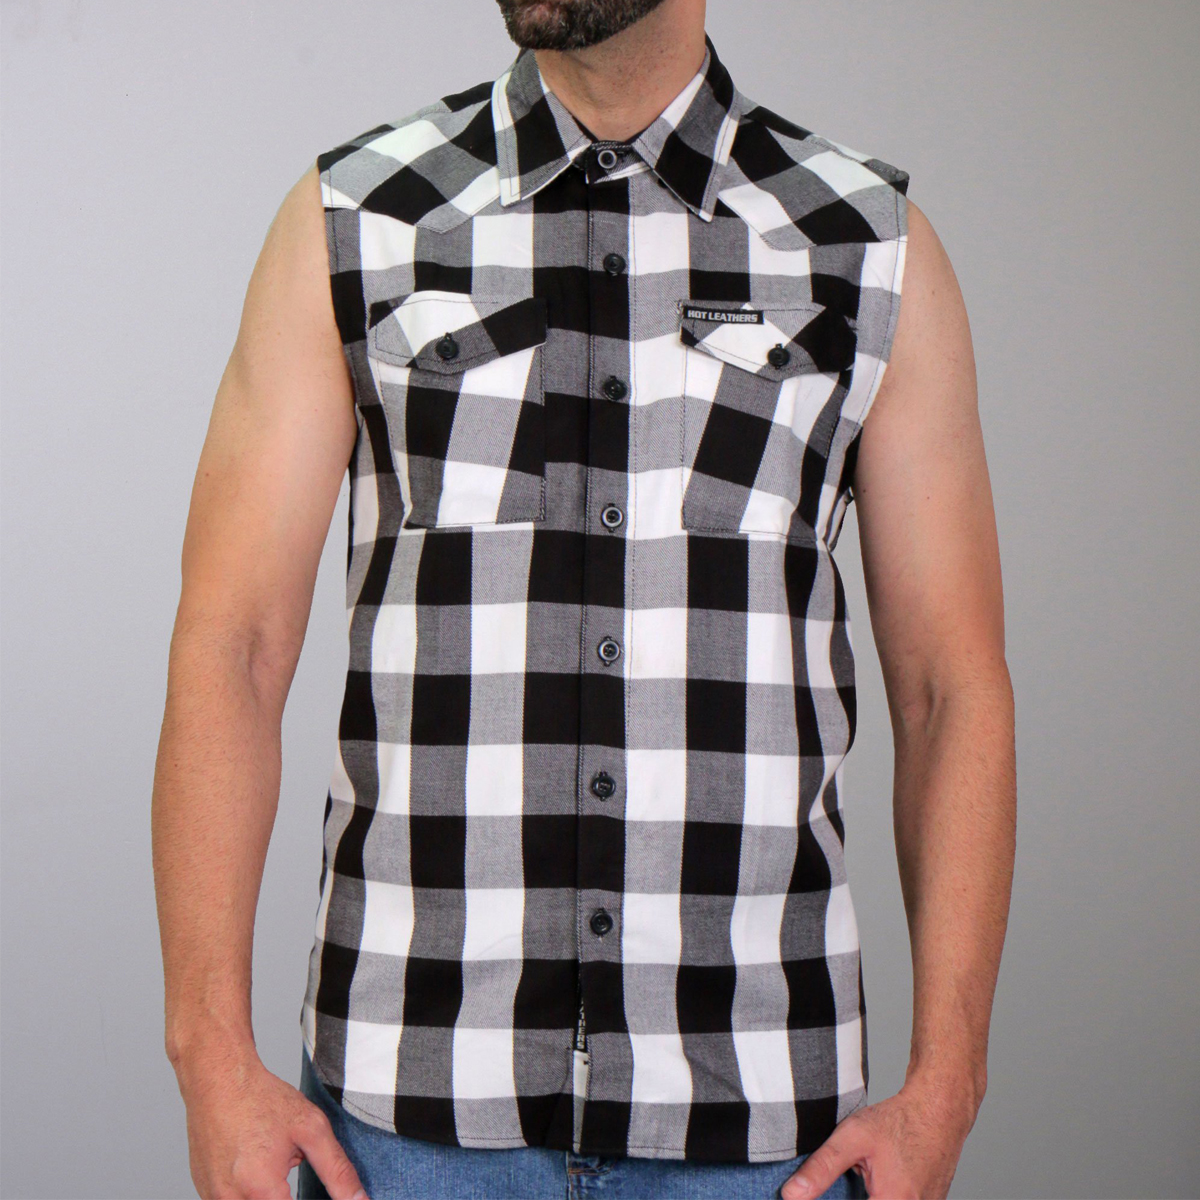 Hot Leathers Sleeveless Flannel White & Black